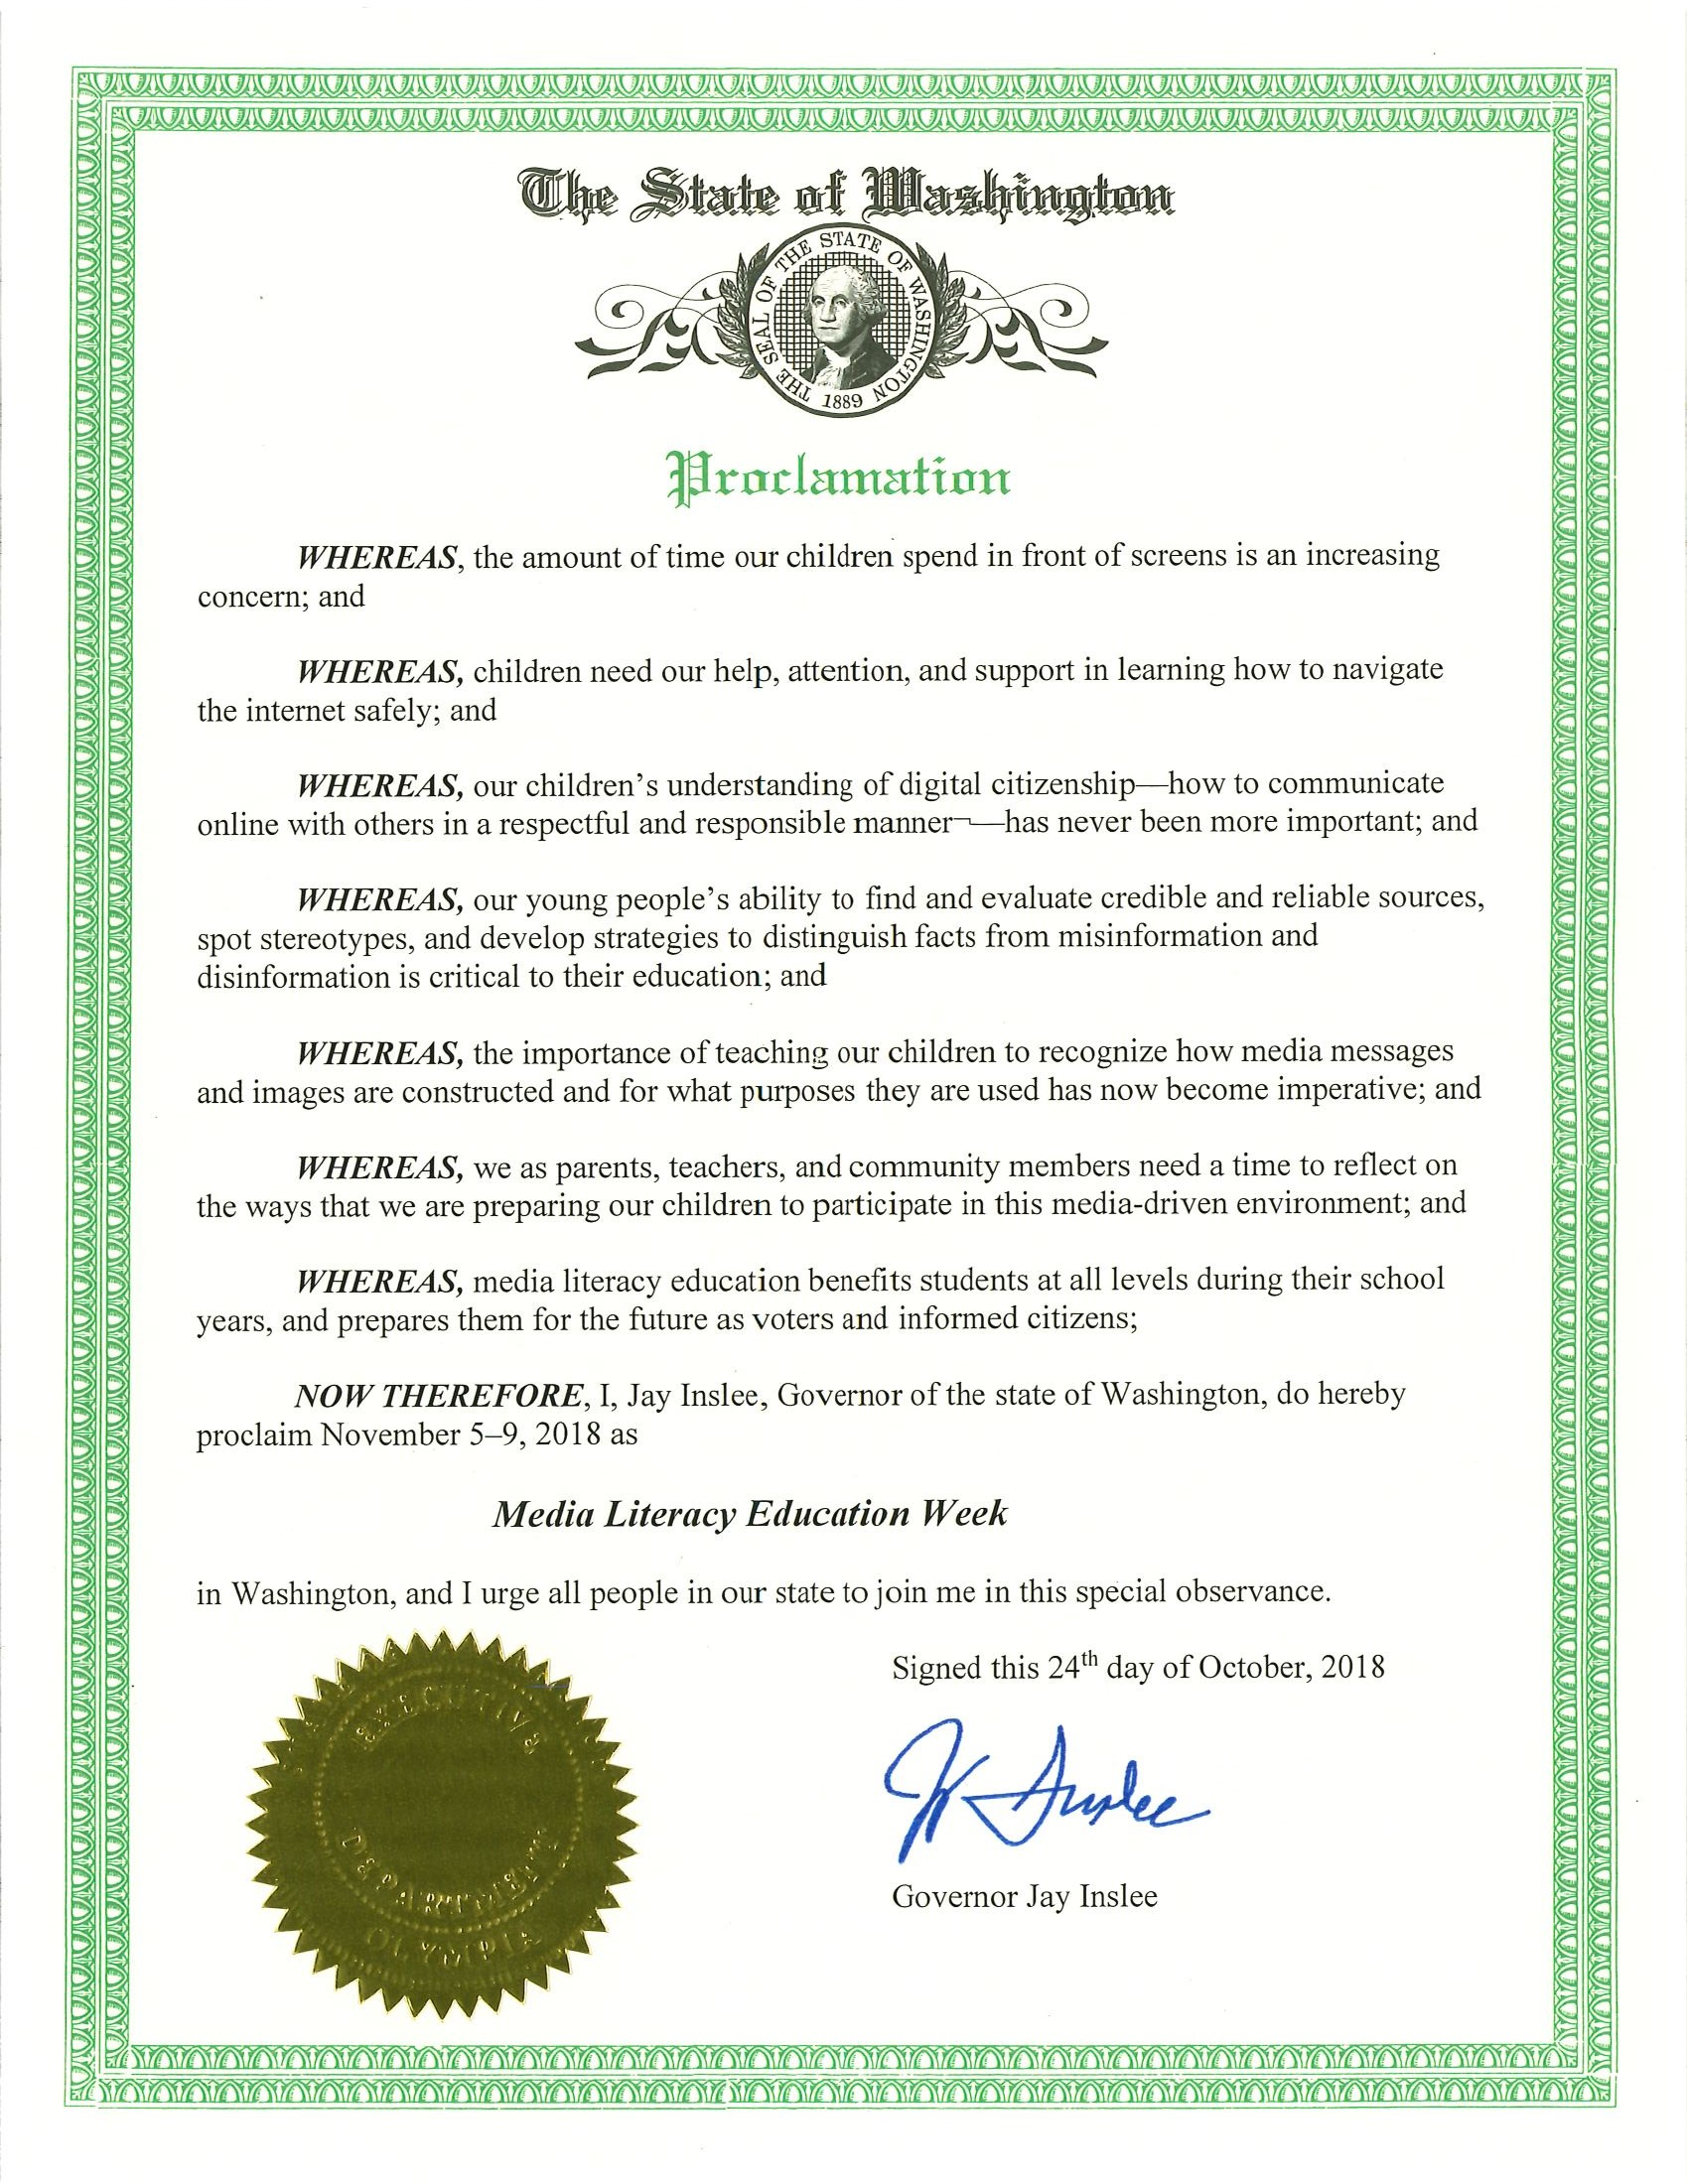 Governor's Proclamation ML Week 2018.jpg